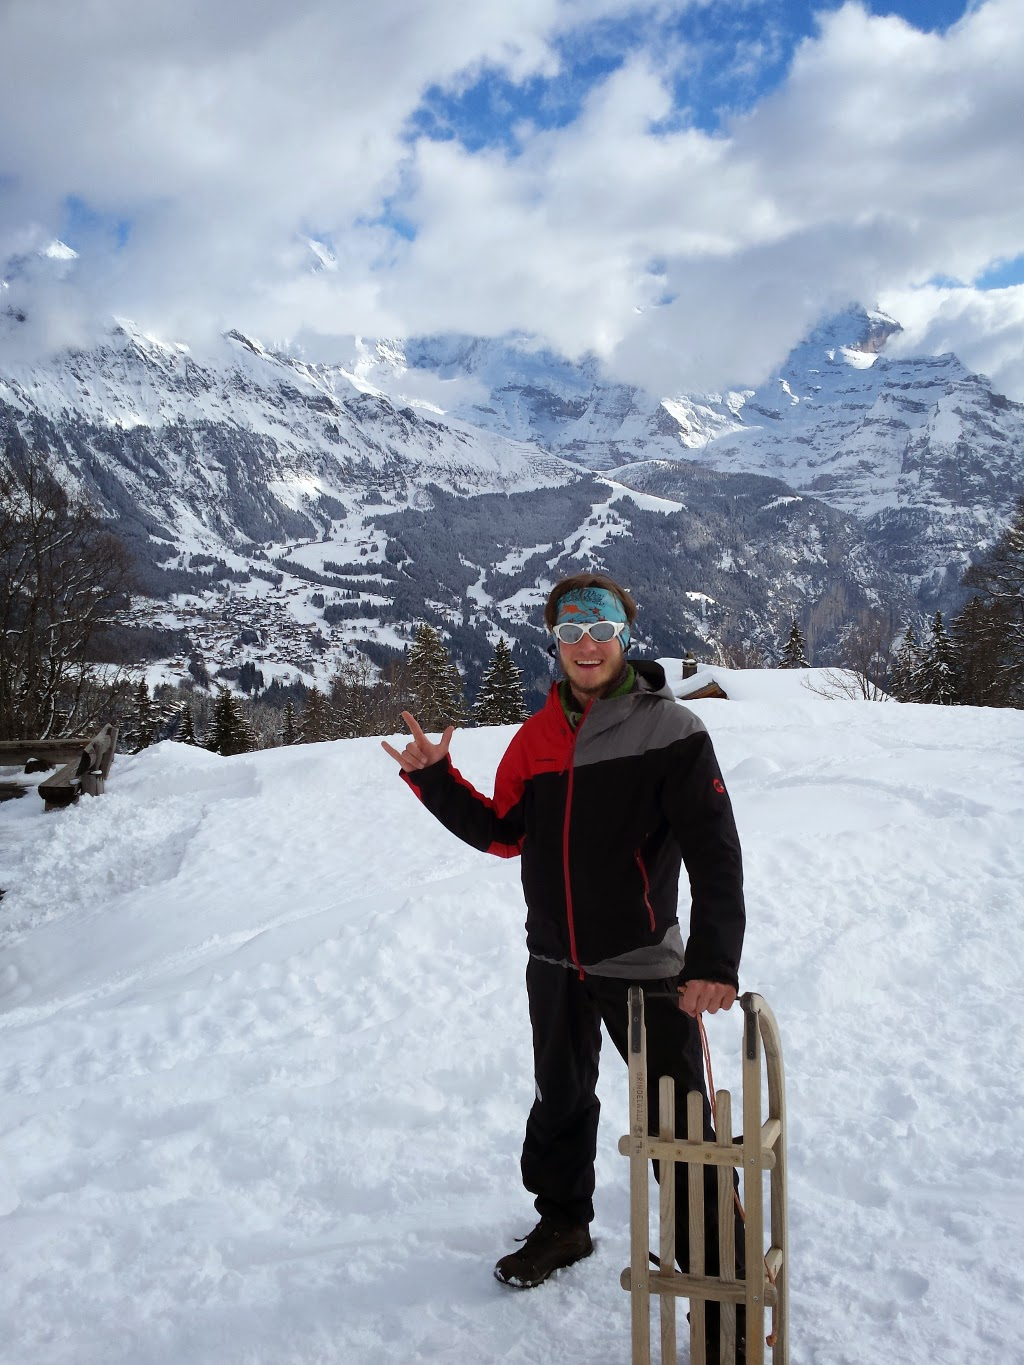 Sledding in front of The Eiger Nordwand